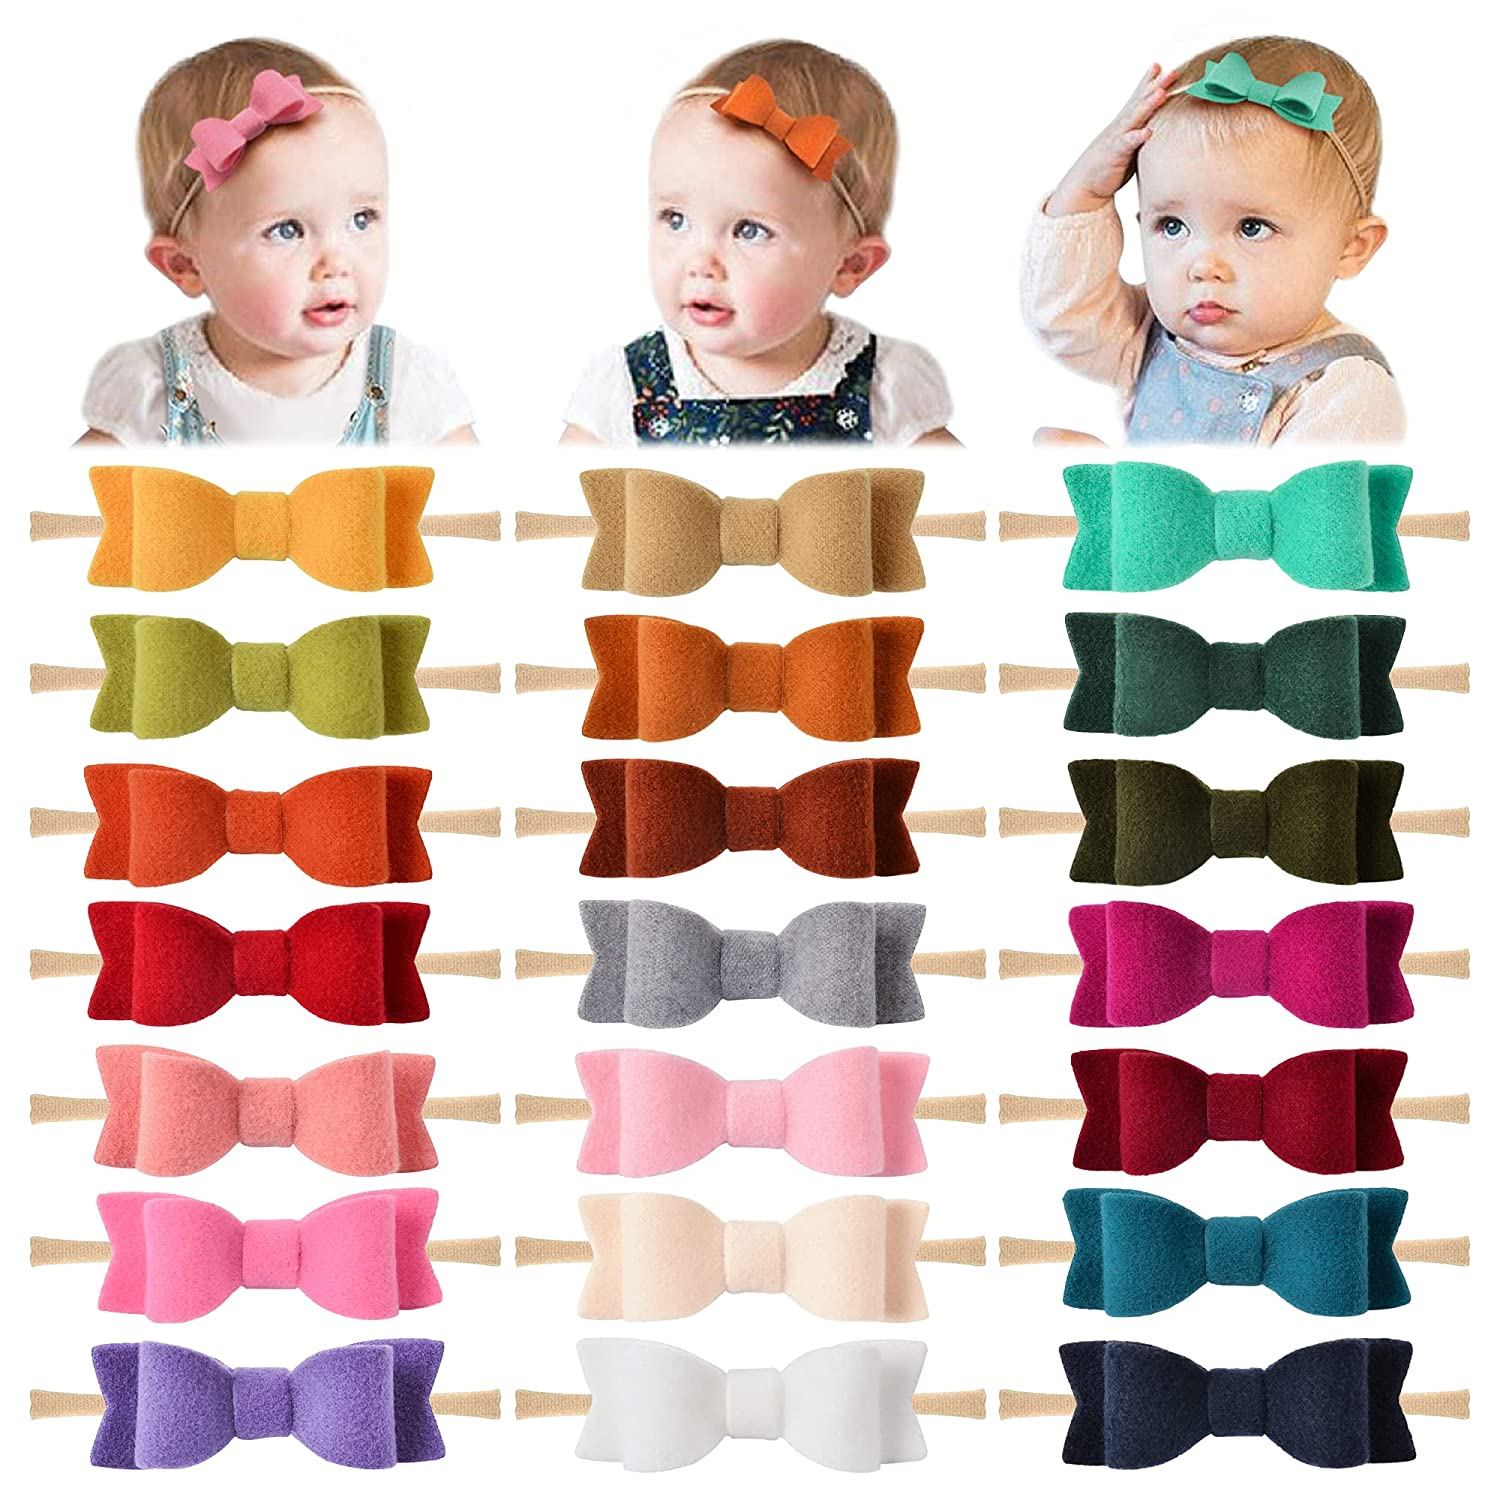 21 PCS Baby Girl Headbands and Bows, Newborn Infant Toddler Nylon Hairbands Hair Accessories